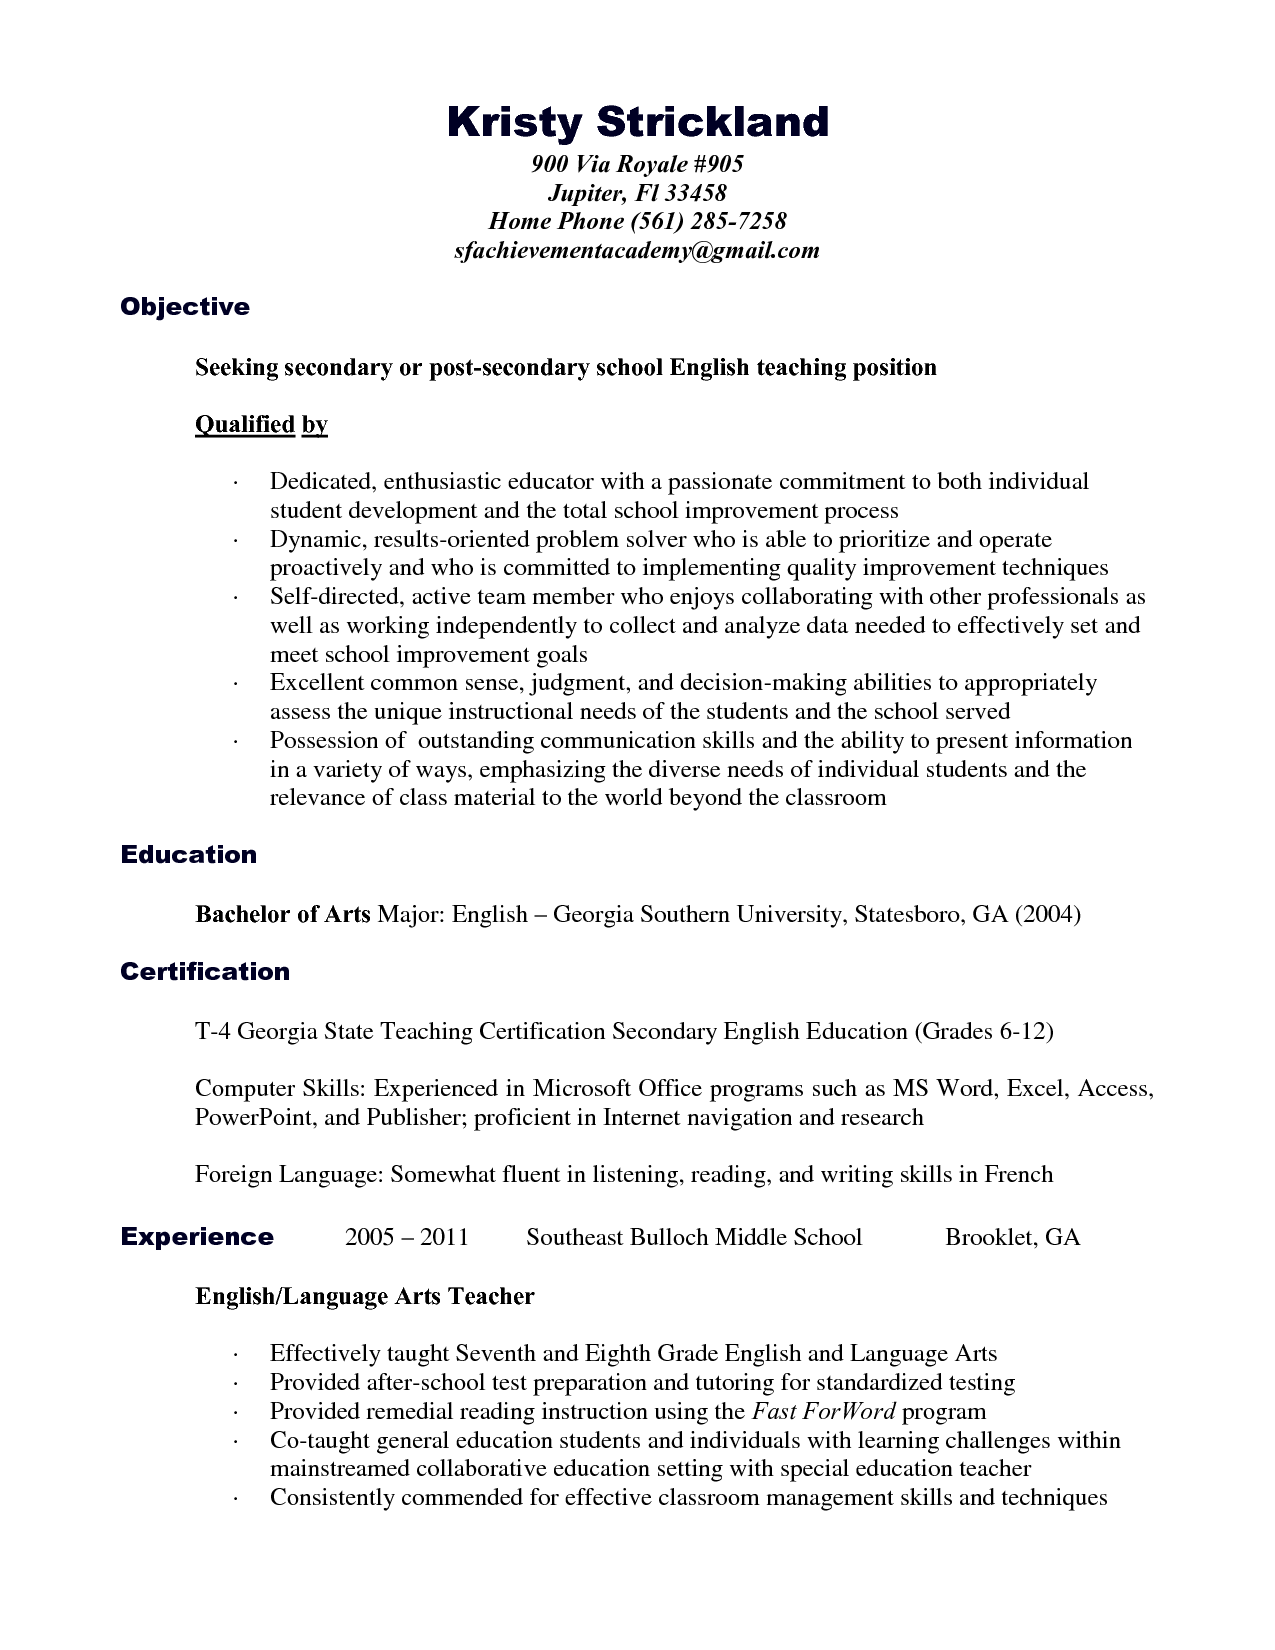 Cheerleading Coach Resume  Google Search  ProfessionalDocuments